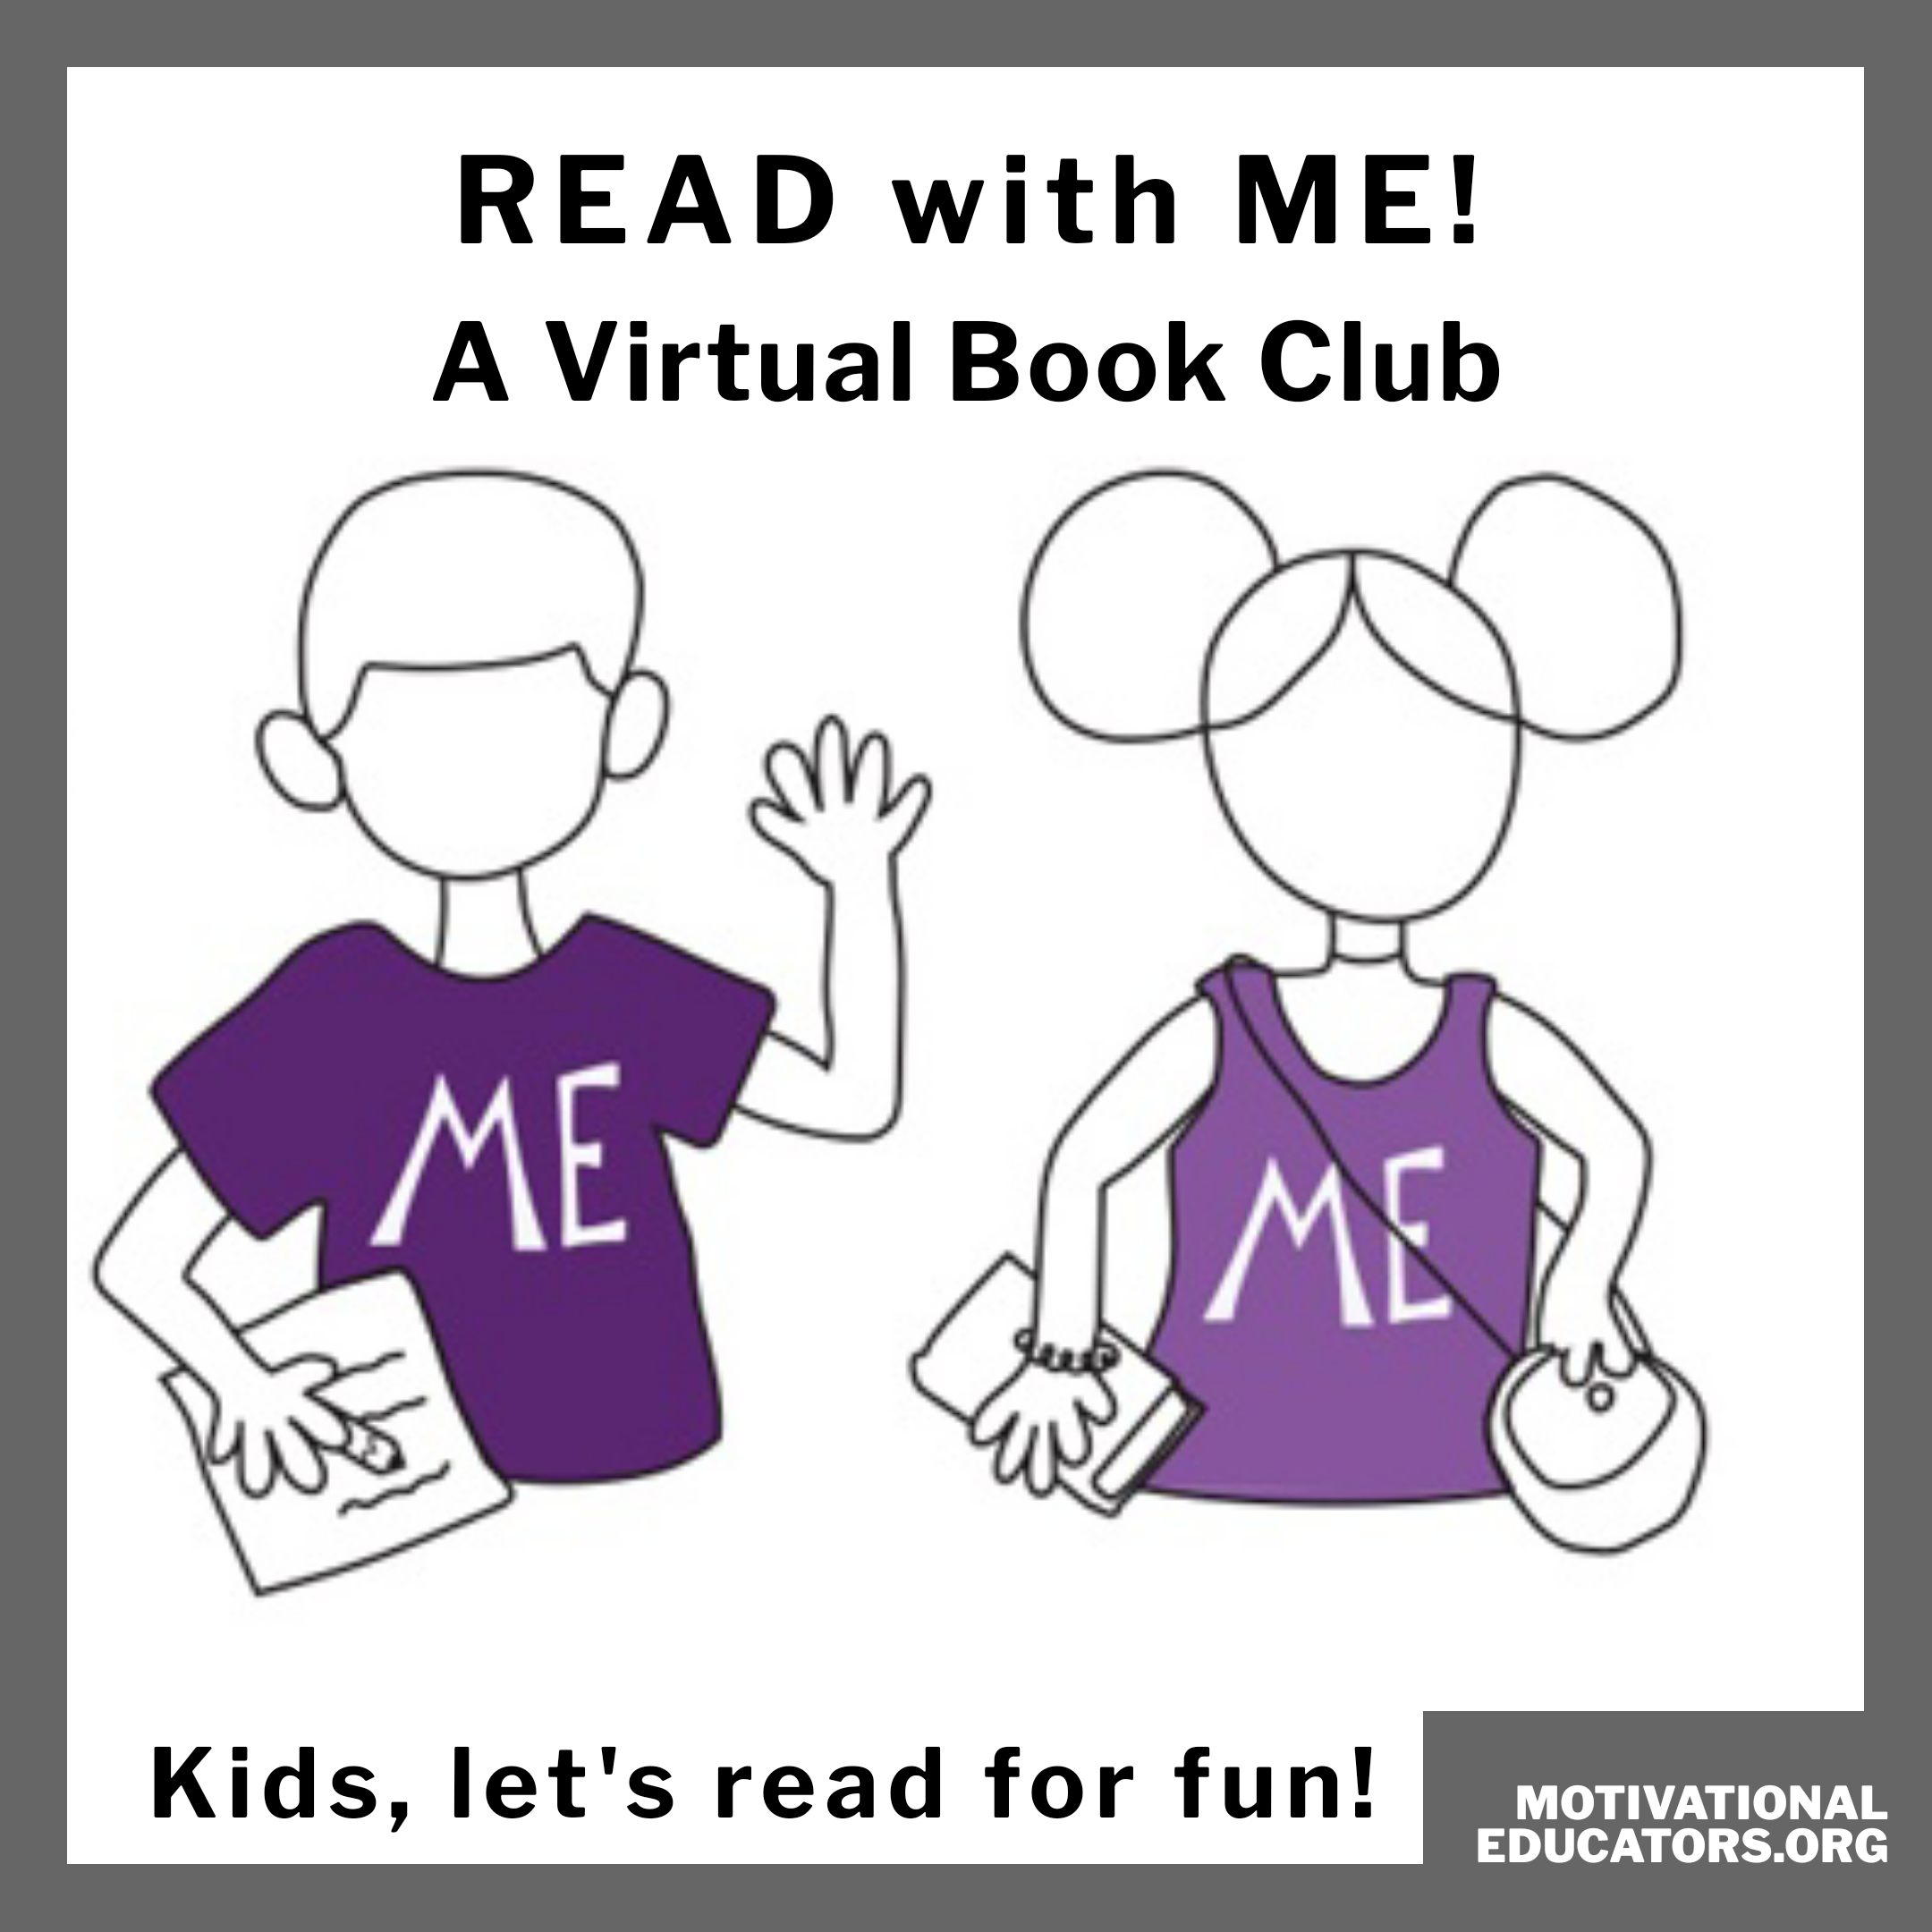 READ with ME! A Virtual Book Club